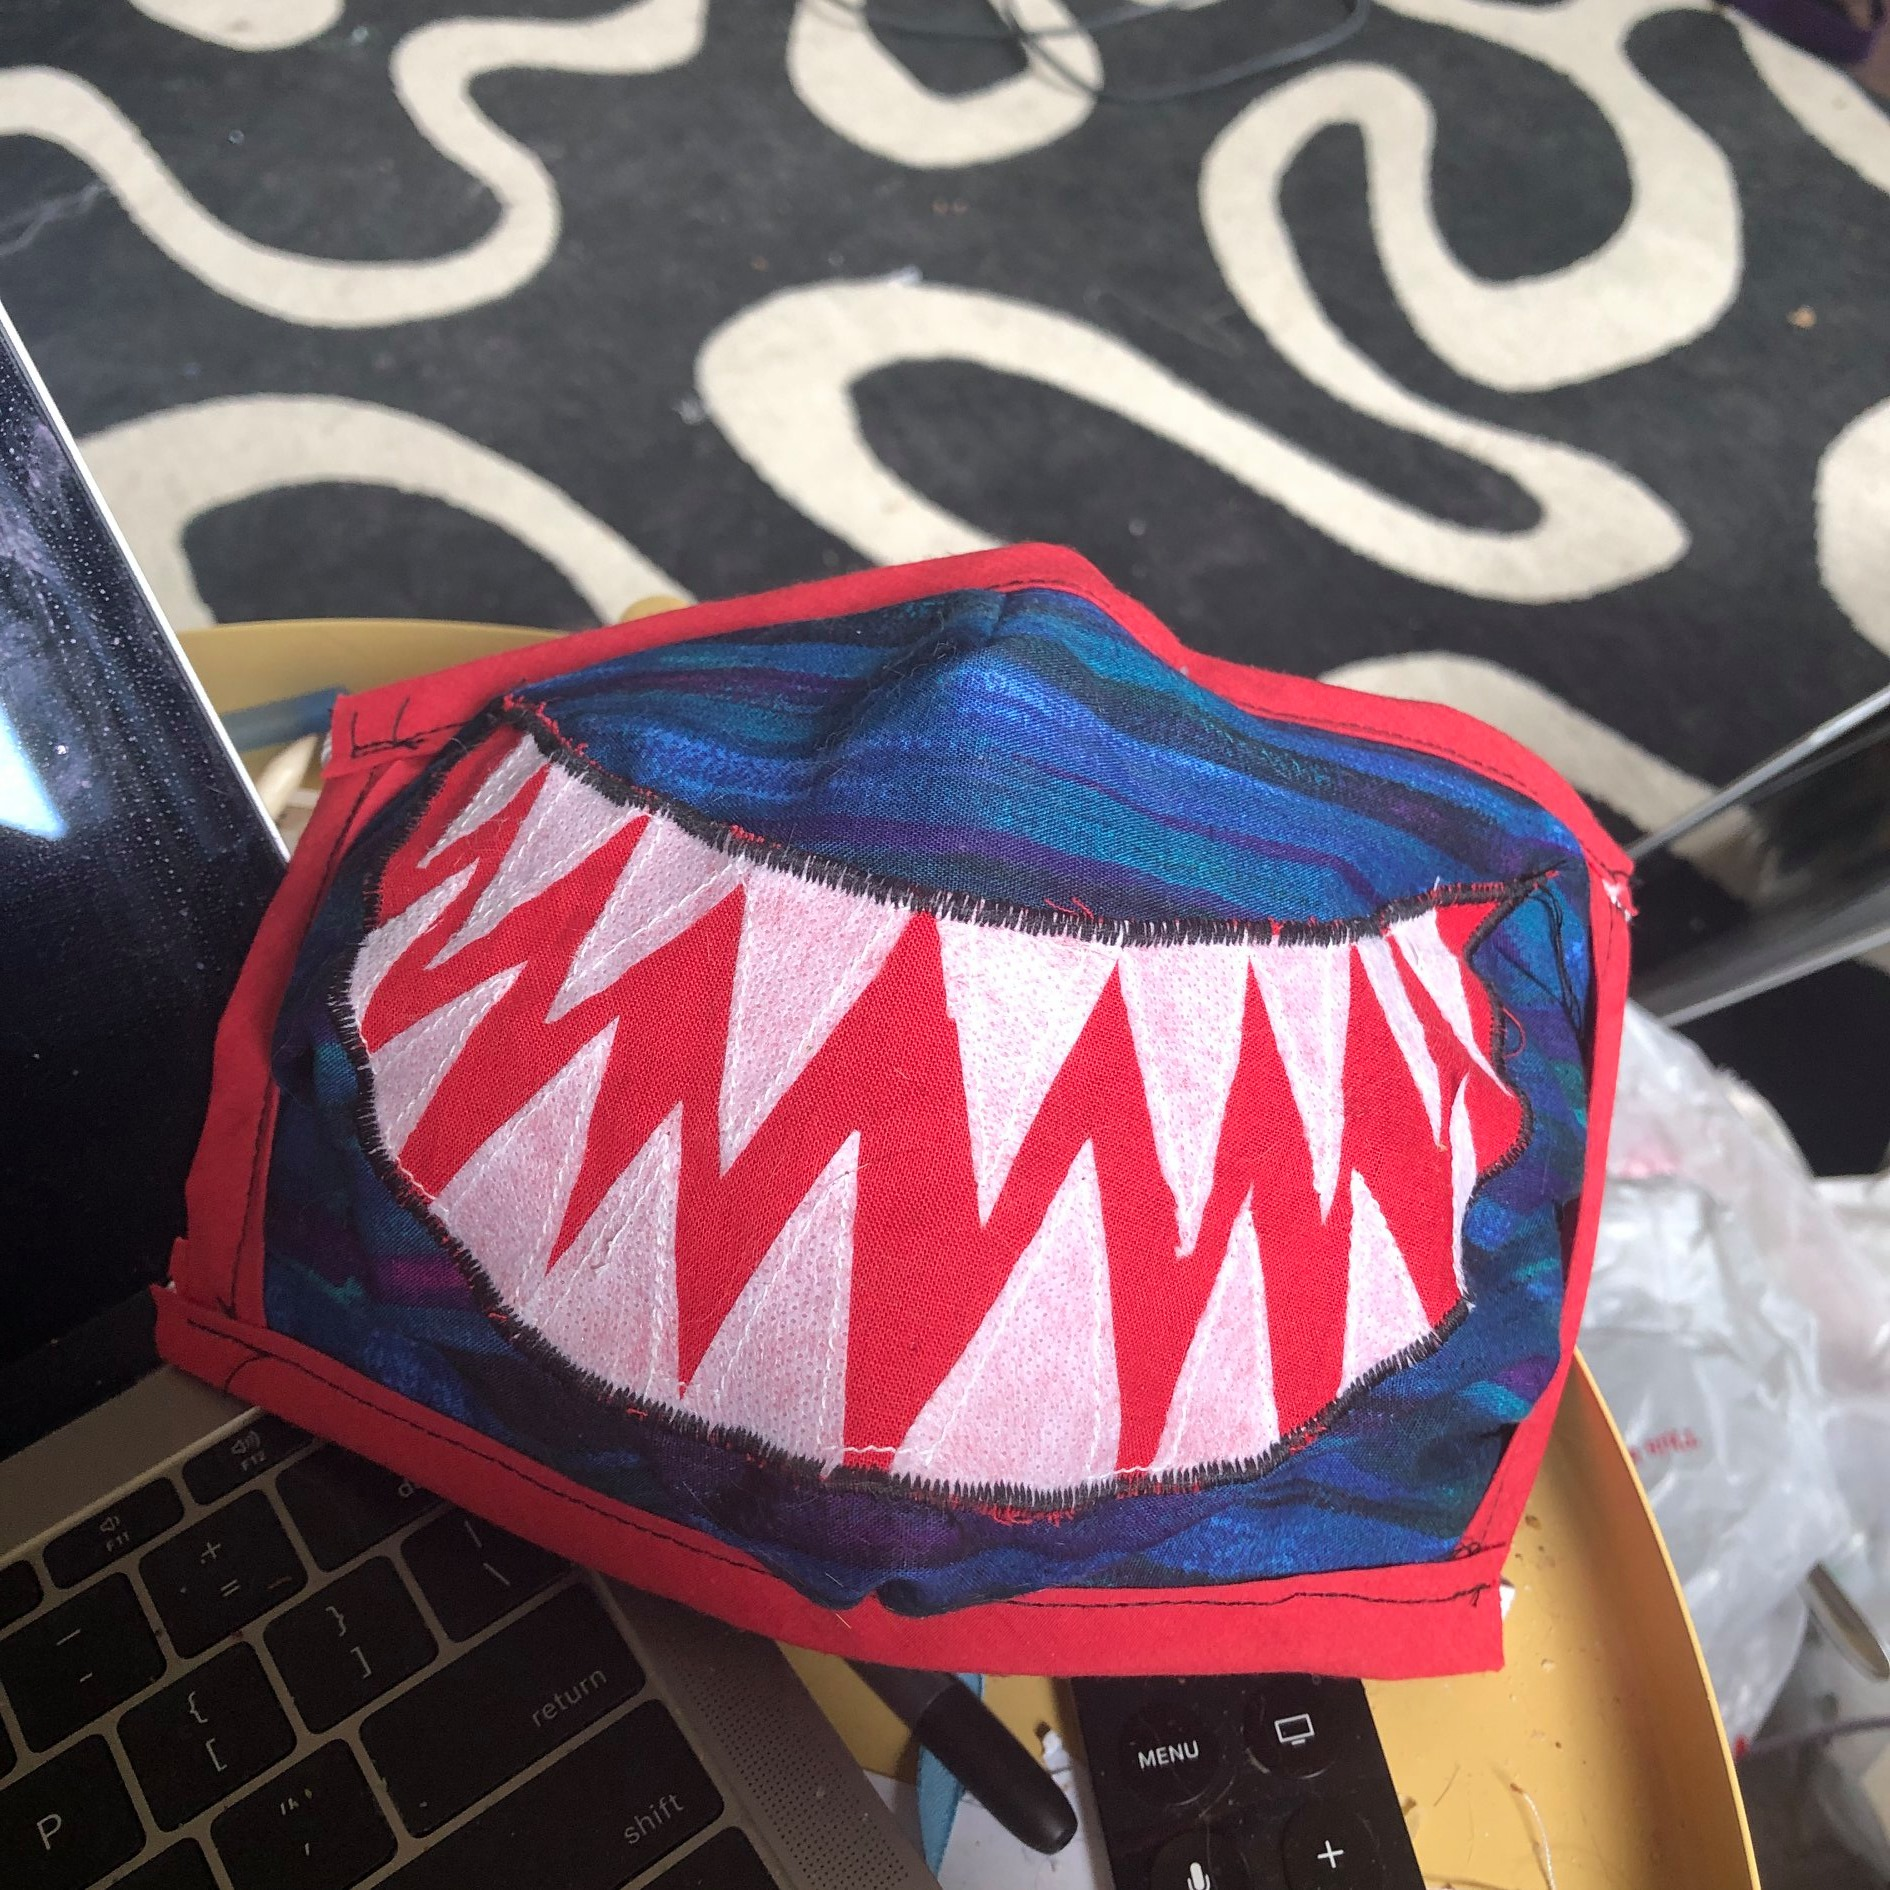 Mask of the Day: Shark mouth